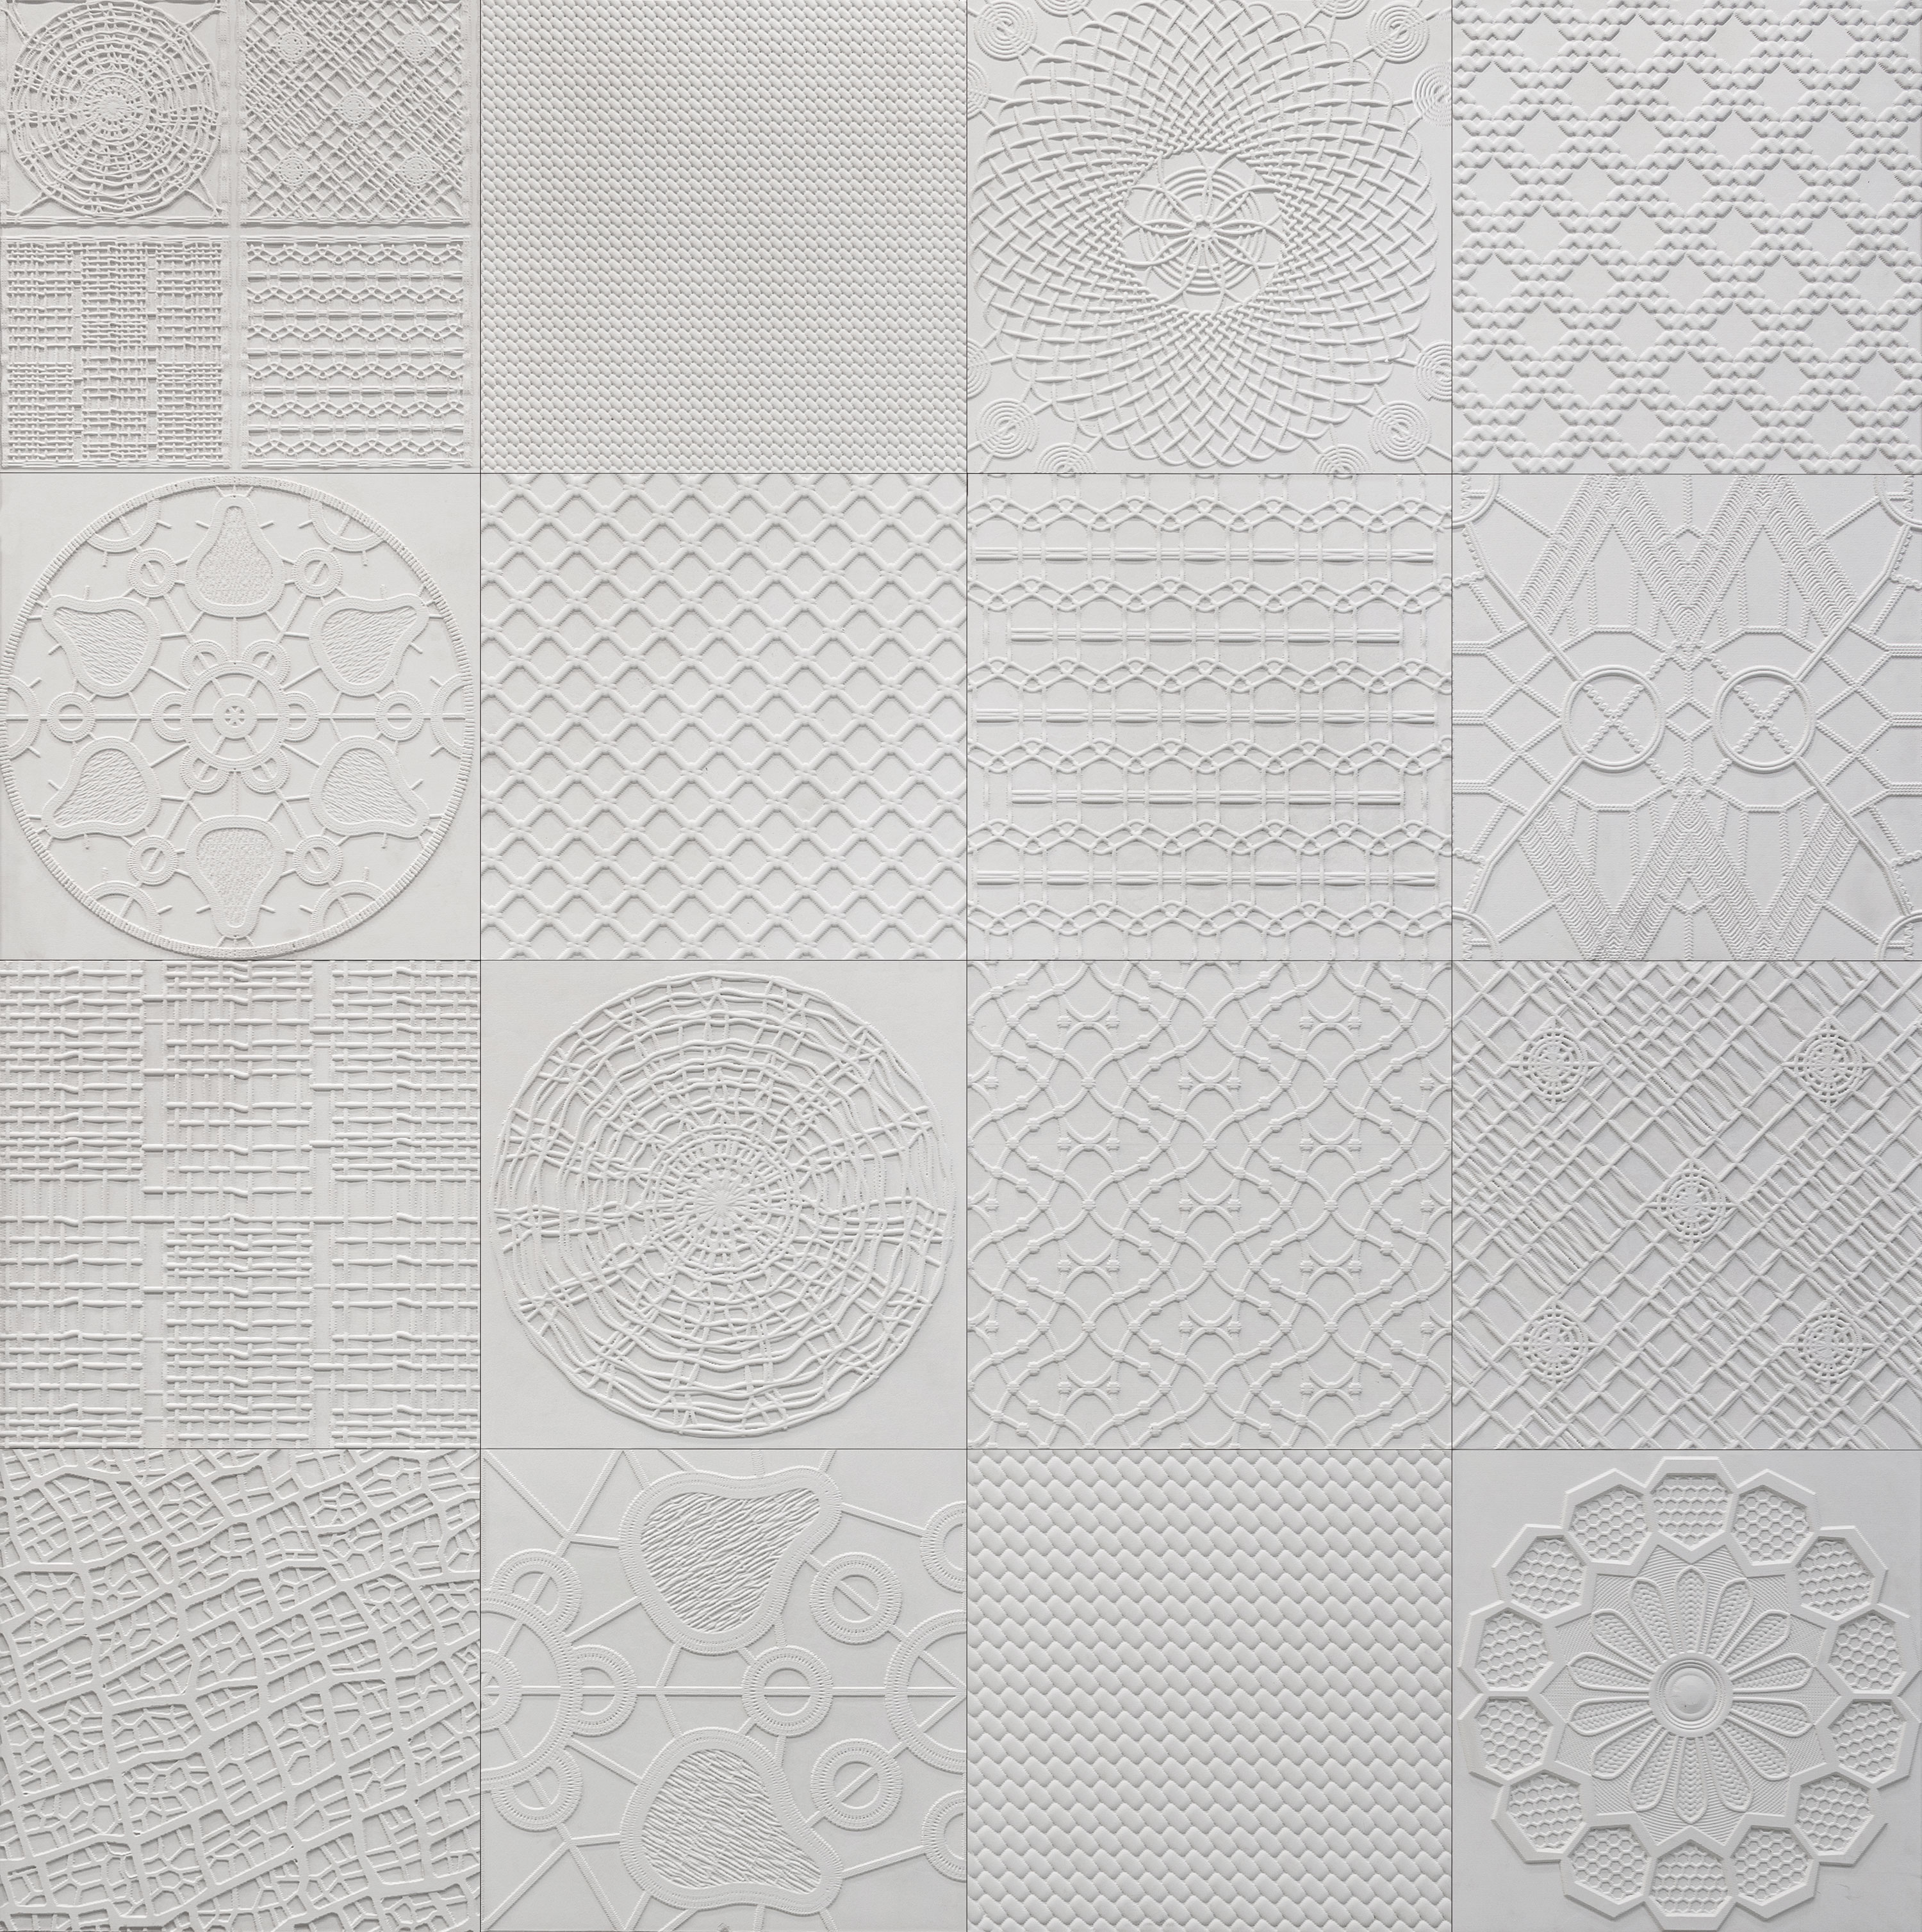 "Weaves - <span>Stories of stone and words, of fossils designed by nature, a mixture of culture and intertwining of knowledge are brought to life within the MEDITERRANEAN WEAVES collection designed by Marella Ferrera.</span><div class=""wpb_text_column wpb_content_element ""><div class=""wpb_wrapper""><p>A contemporary interpretation of the textile tradition made in Sicily that reflects the transparency and lightness of ancient embroidery, doilies, filet and macrame' on stone creating a delicate filigree of extraordinary beauty and chromatic quality.</p><p>All of Sicily is expressed in the palette of its richest stones; from the lava stone to the white Comiso stone, from the pitchstone to the Ragusa stone, from the Palermo stone to the Trapani stone.<br /><br /></p><p><em>""A shared vision of the symbols of the Mediterranean 'etched in stone' which begin with the understanding of textiles, with a gentle hint of the baroque sculptures which then blend with the symbols of architecture.""</em></p><p><em>Marella Ferrera<span> </span></em></p></div></div> 